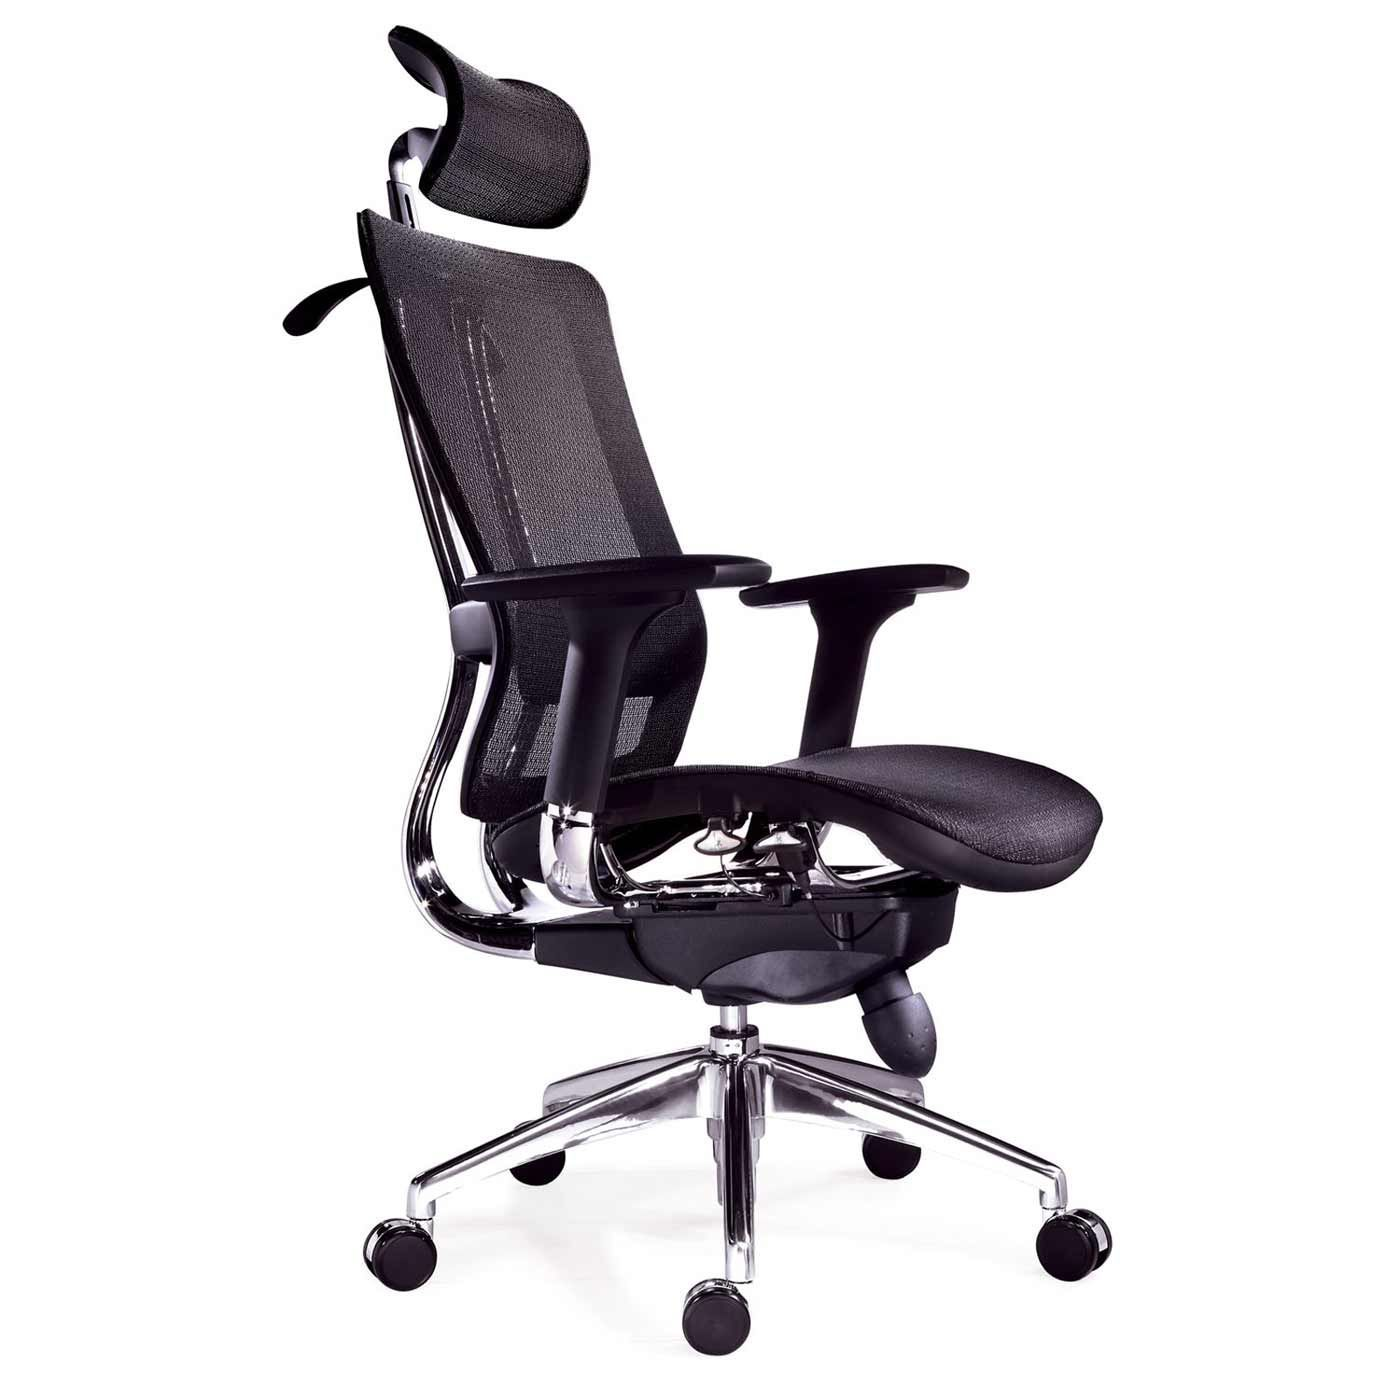 Desk Chair With Headrest Best For Back Pain Check More At Http